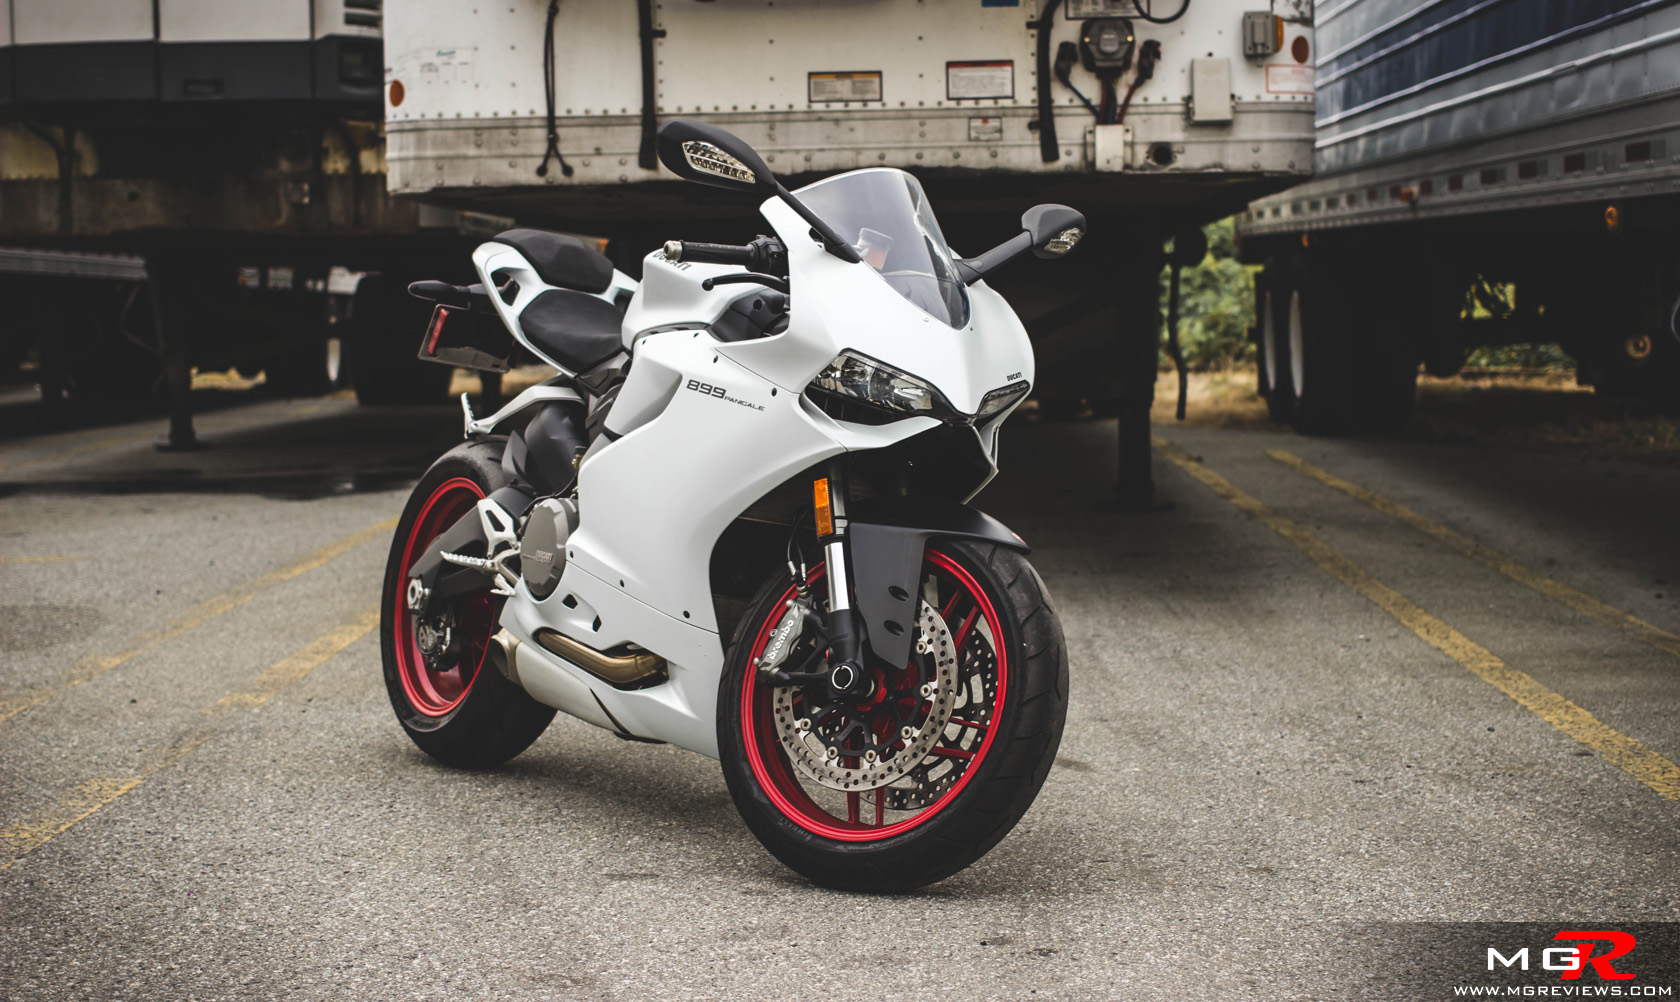 2014 Ducati 899 Panigale White 1 M G Reviews